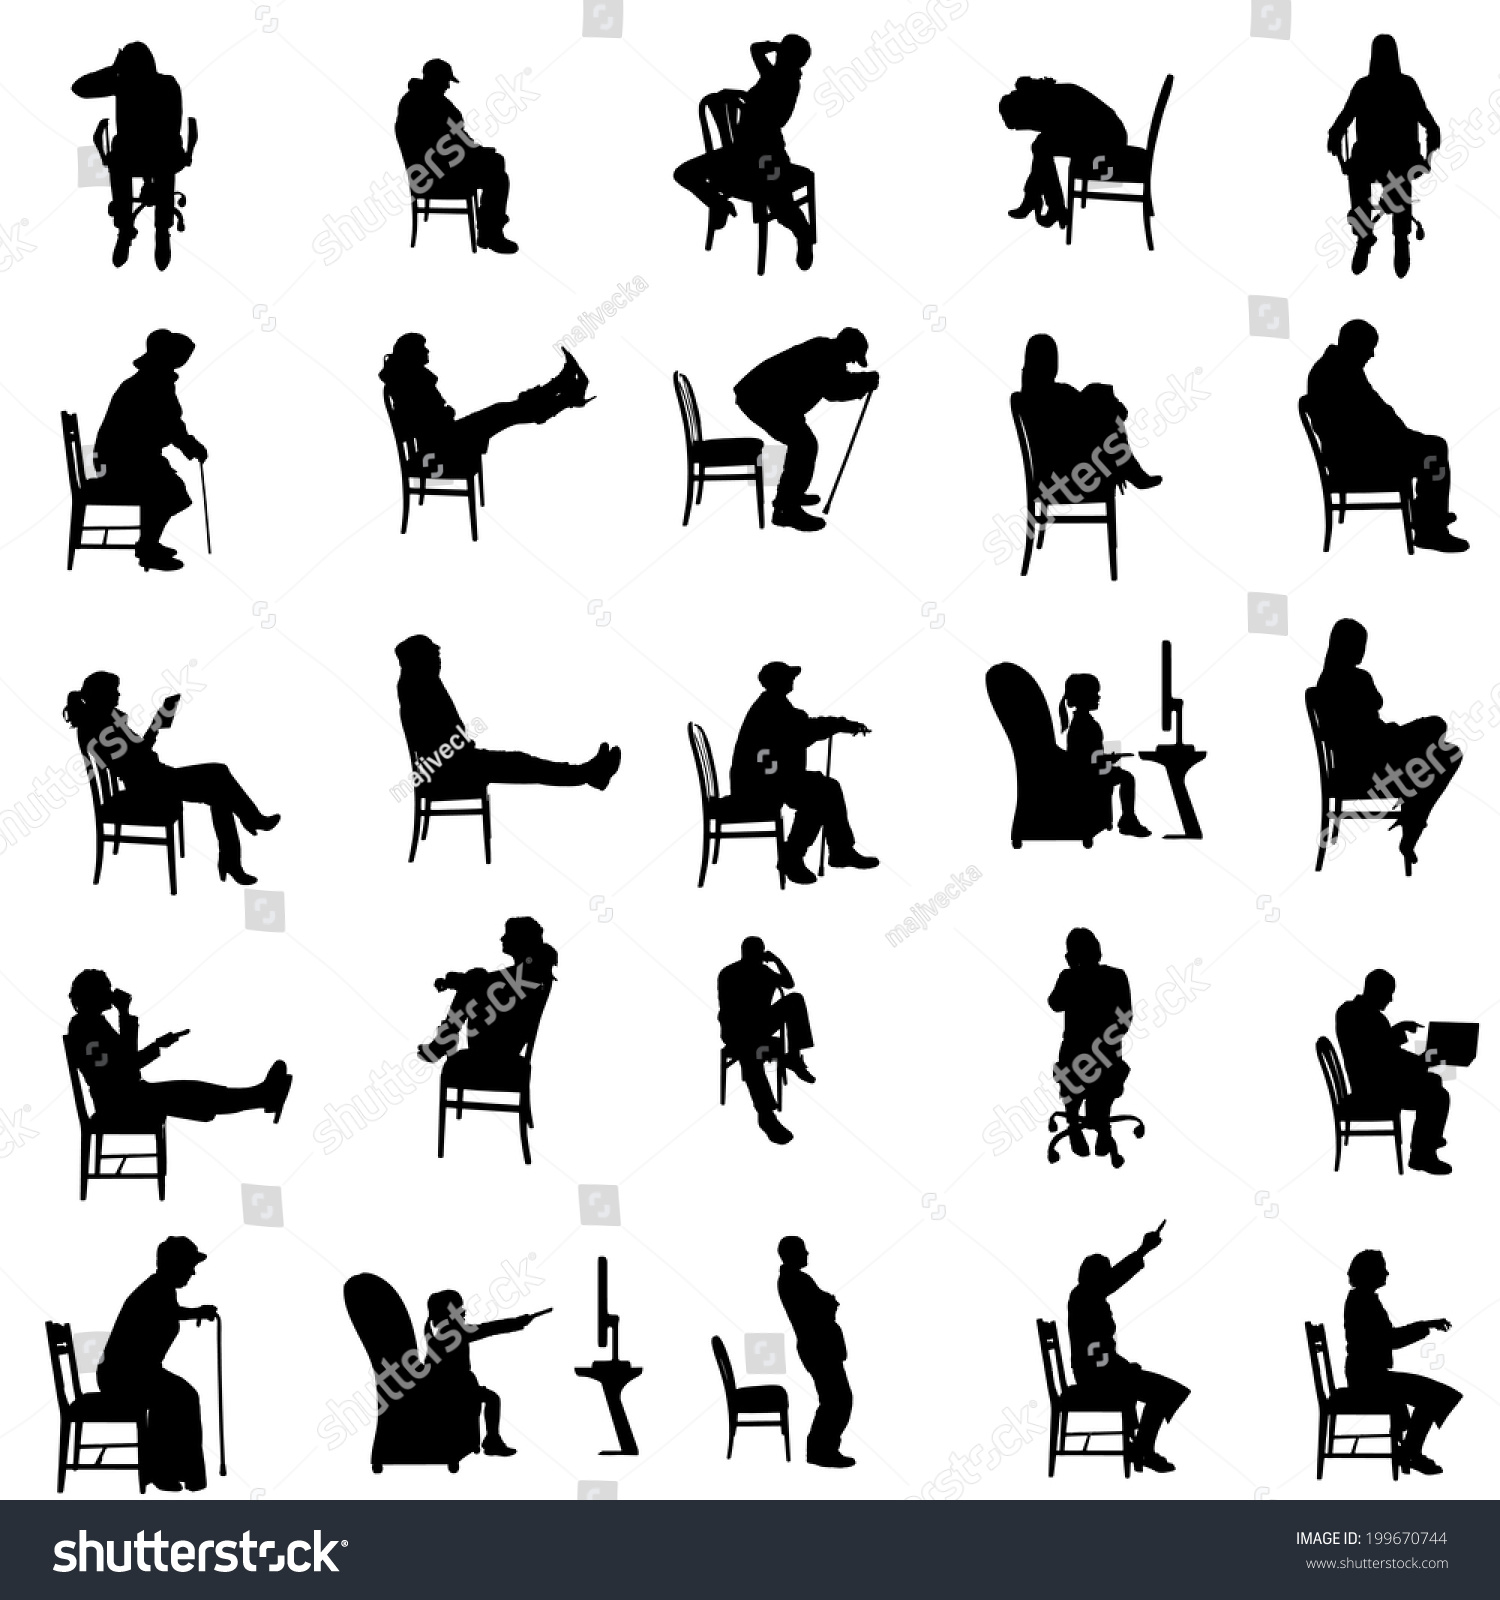 Vector Silhouettes Of People Sitting In A Chair. - 199670744 ...